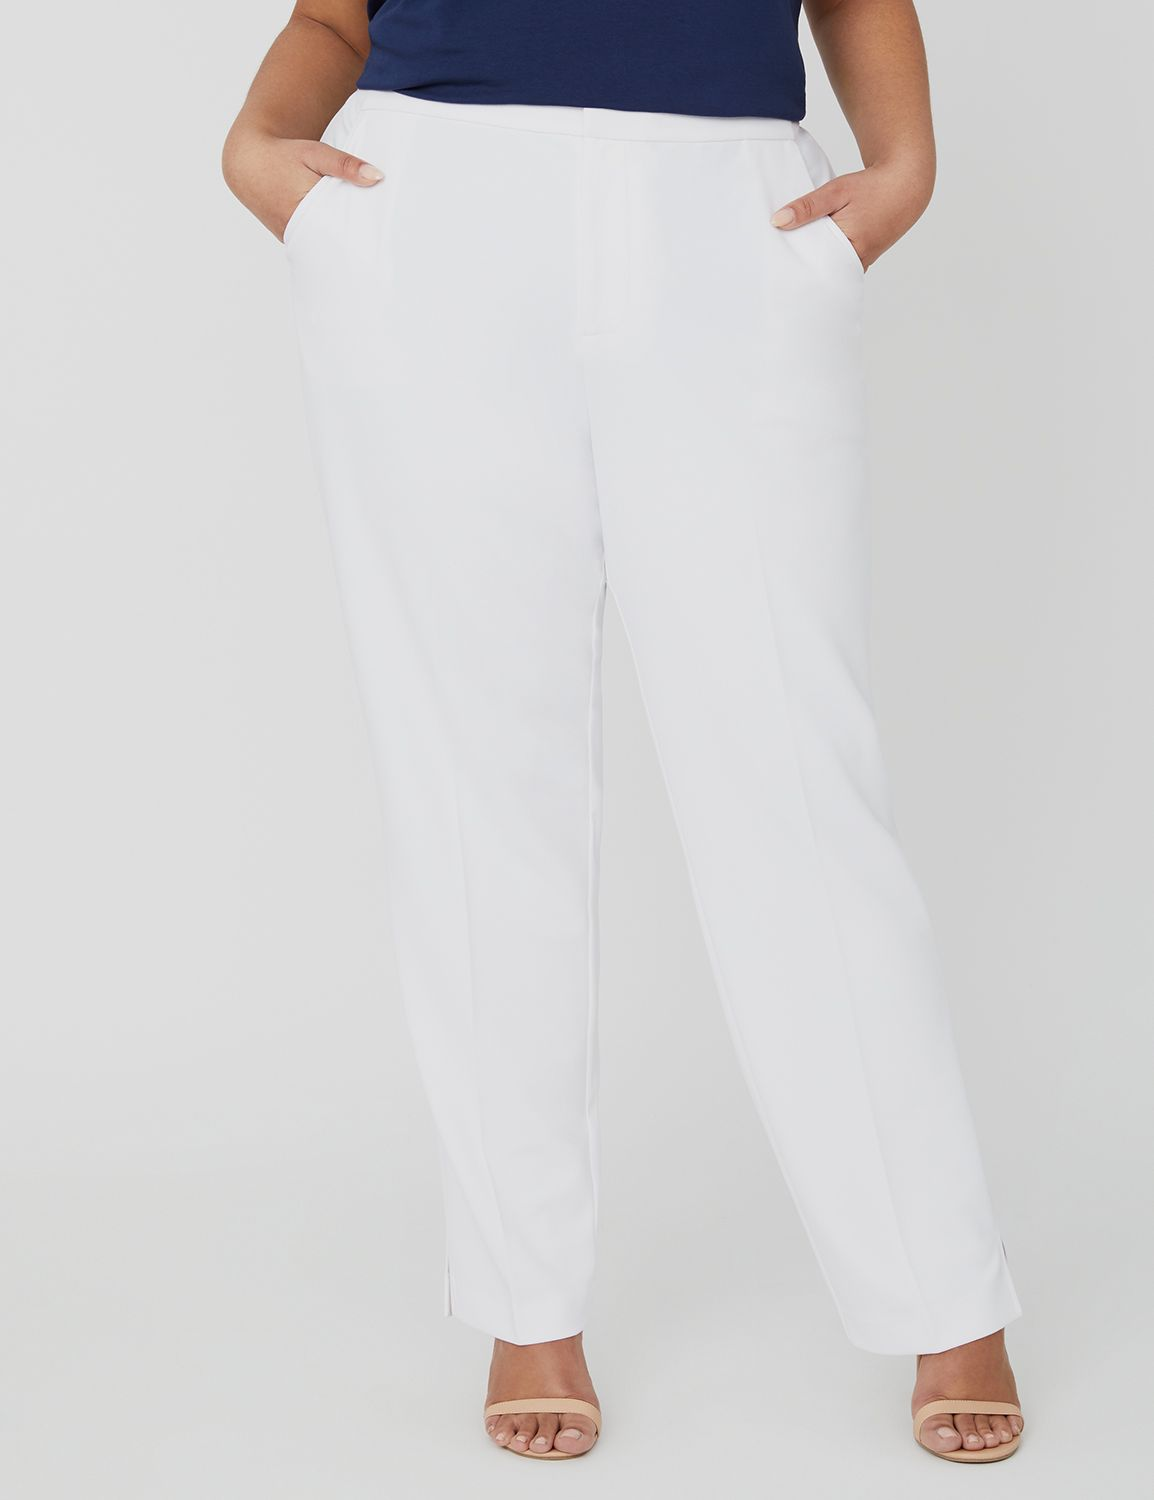 Black Label Soft Crepe Pant 1088525 Soft Crepe Pant with Elasti MP-300098644